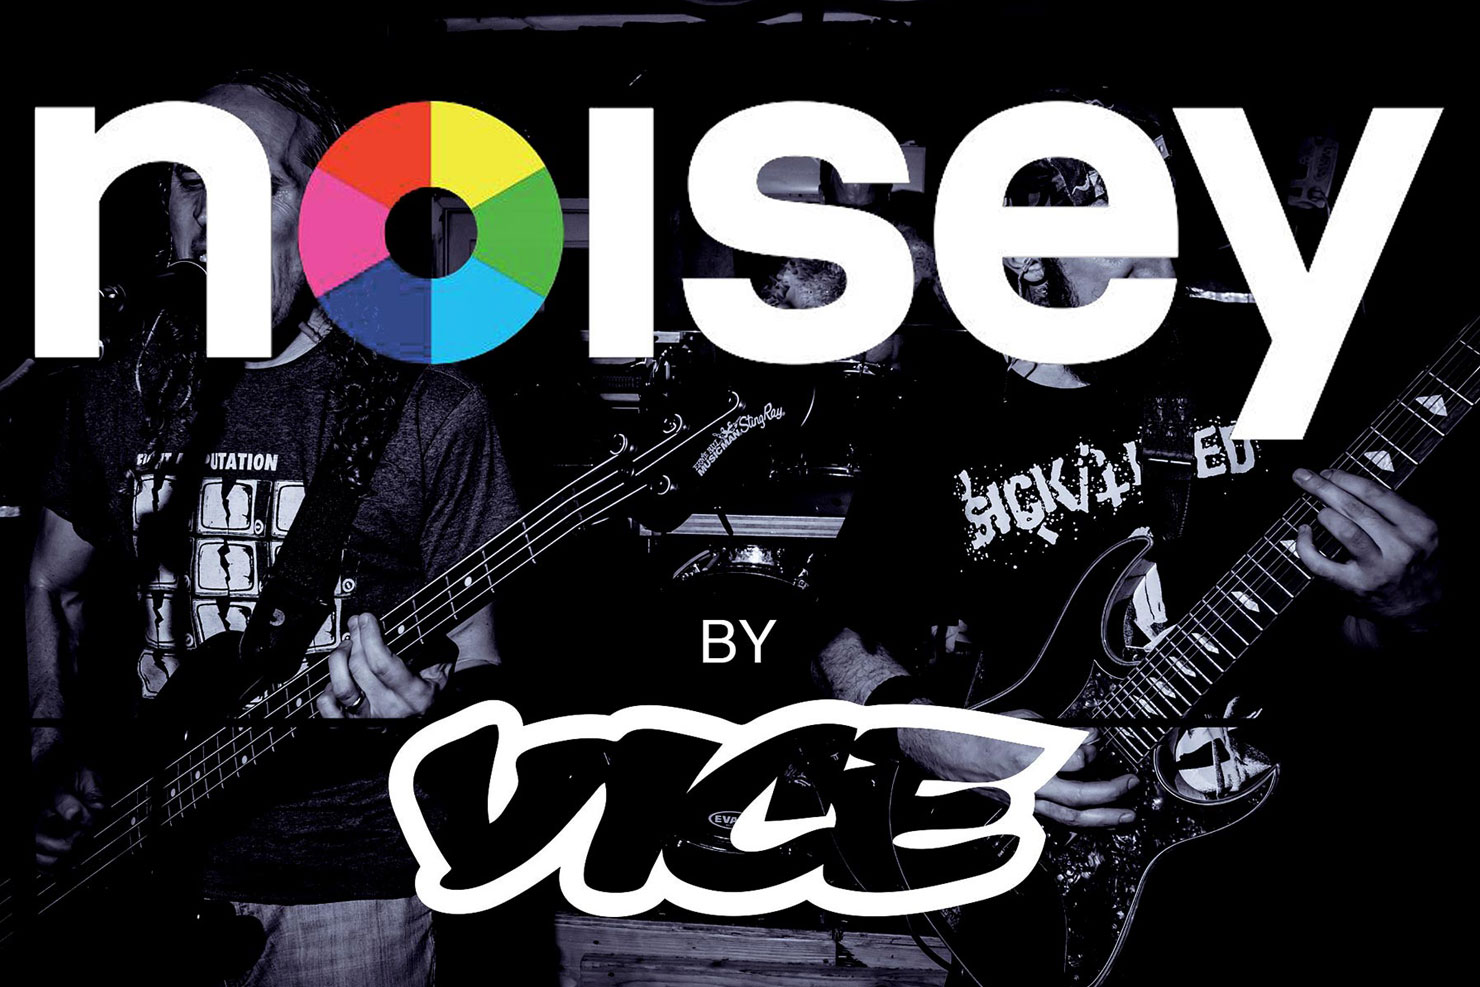 DIE CHOKING noisey by vice premiere